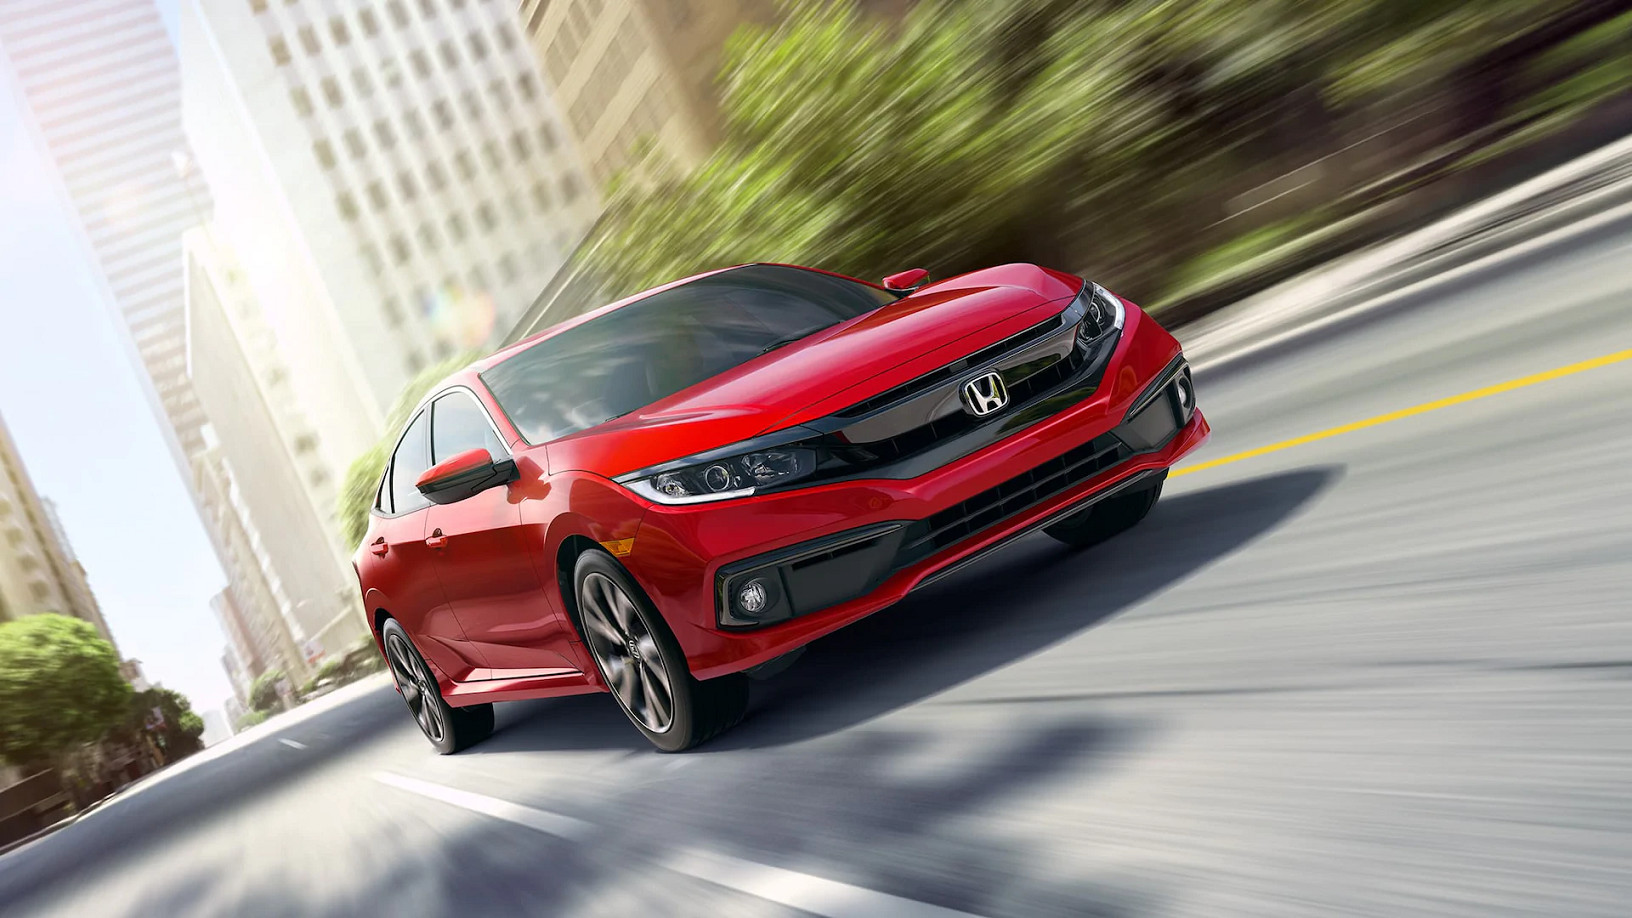 2020 Honda Civic for Sale near Washington, DC